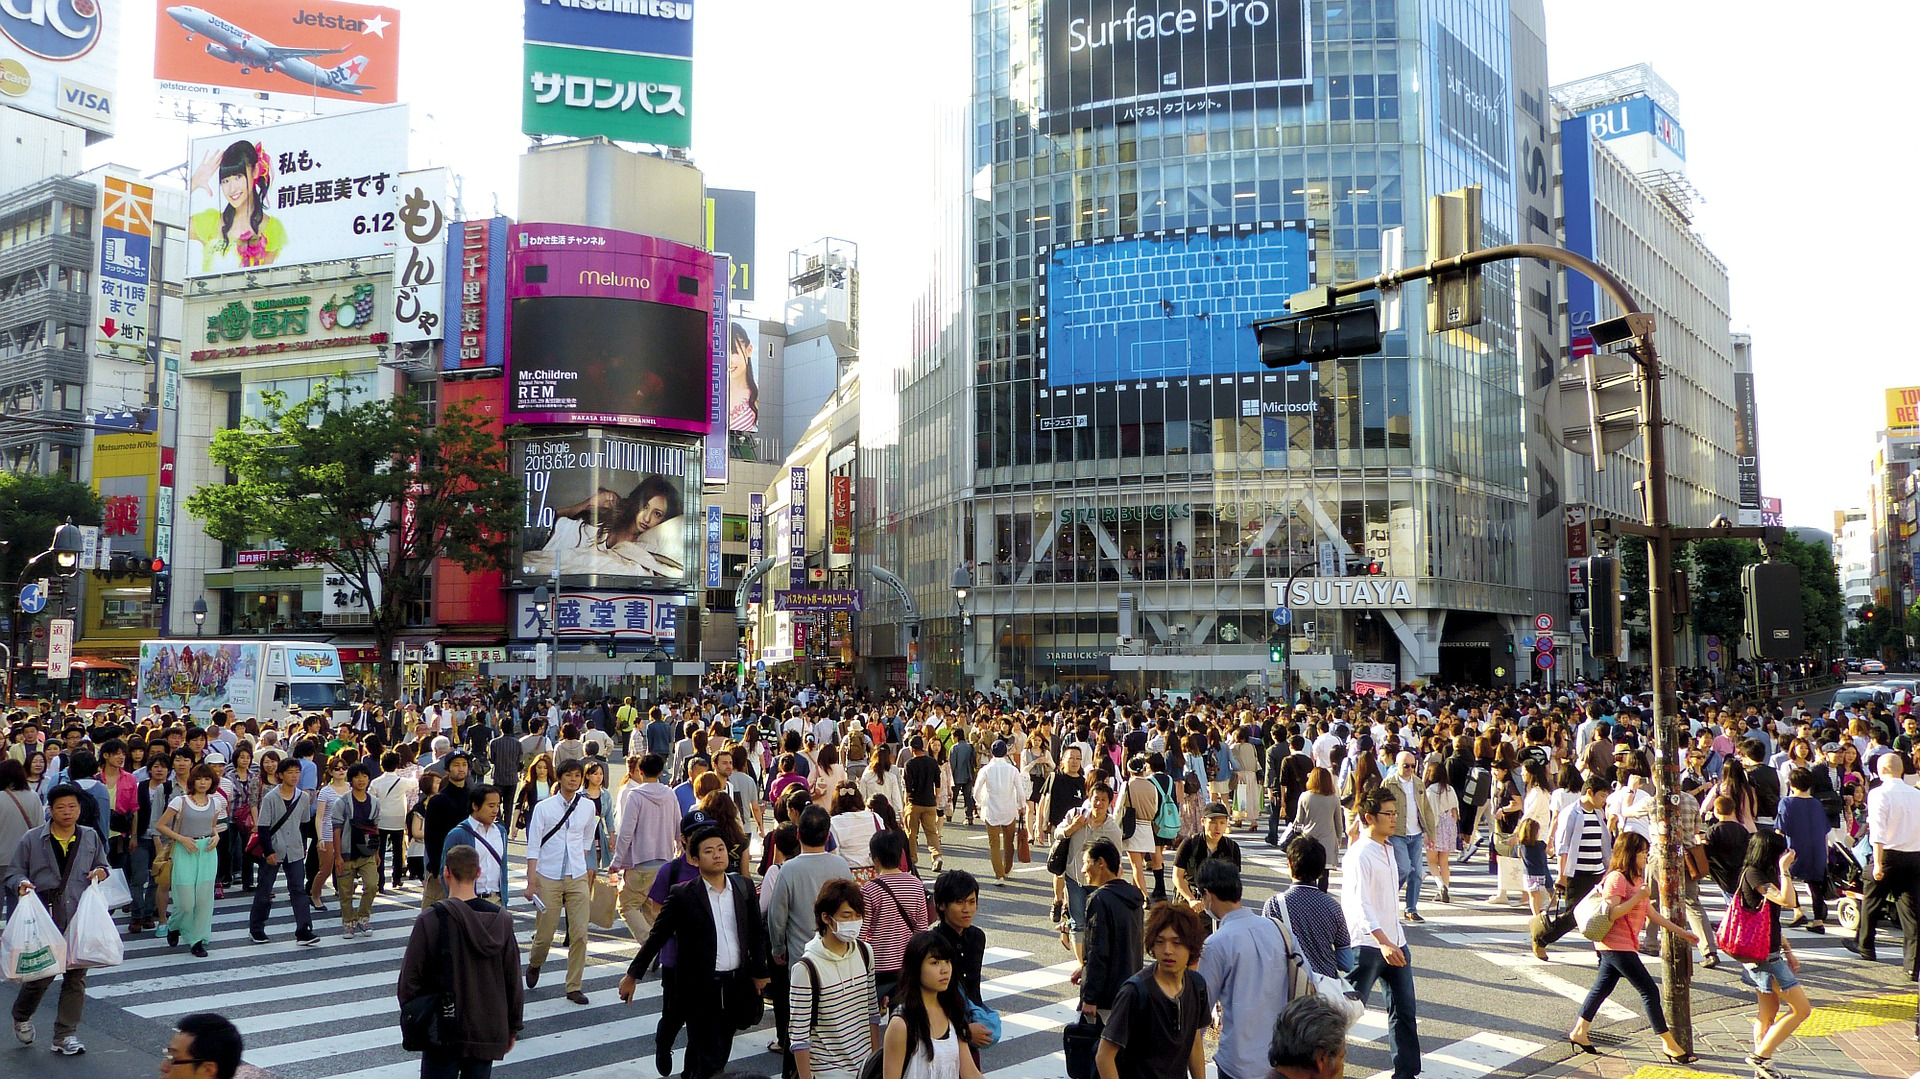 Government panel in Japan proposes minimum wage increase